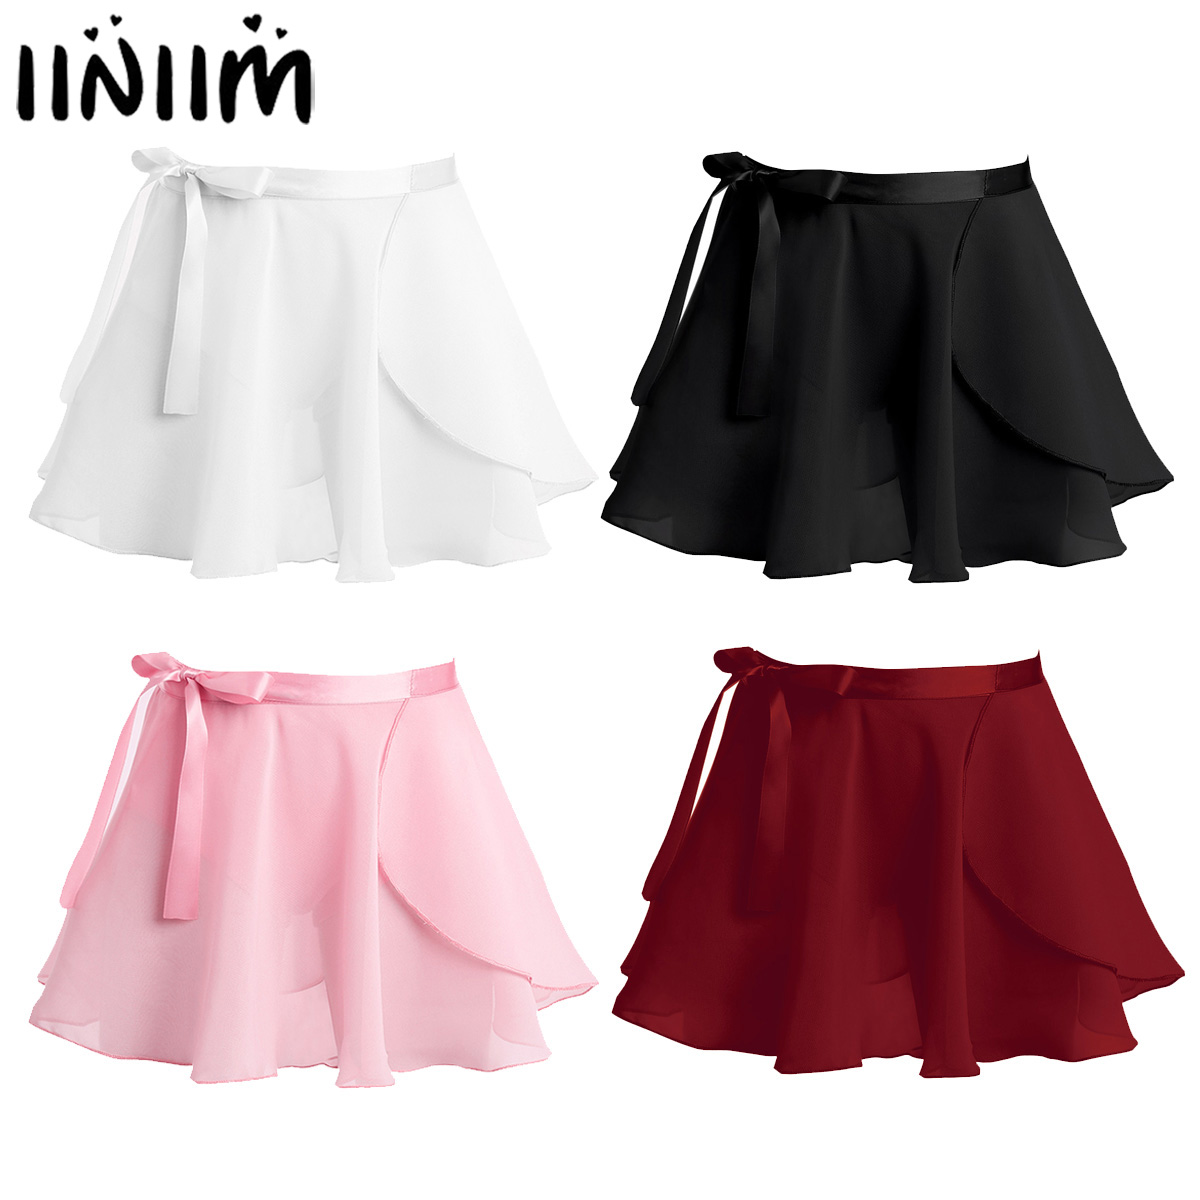 Iiniim Kids Girls Ballet Dance Basic Classic Chiffon Mini Pull-On Wrap Skirt With Waist Tie Costume For Performance Dancing Wear